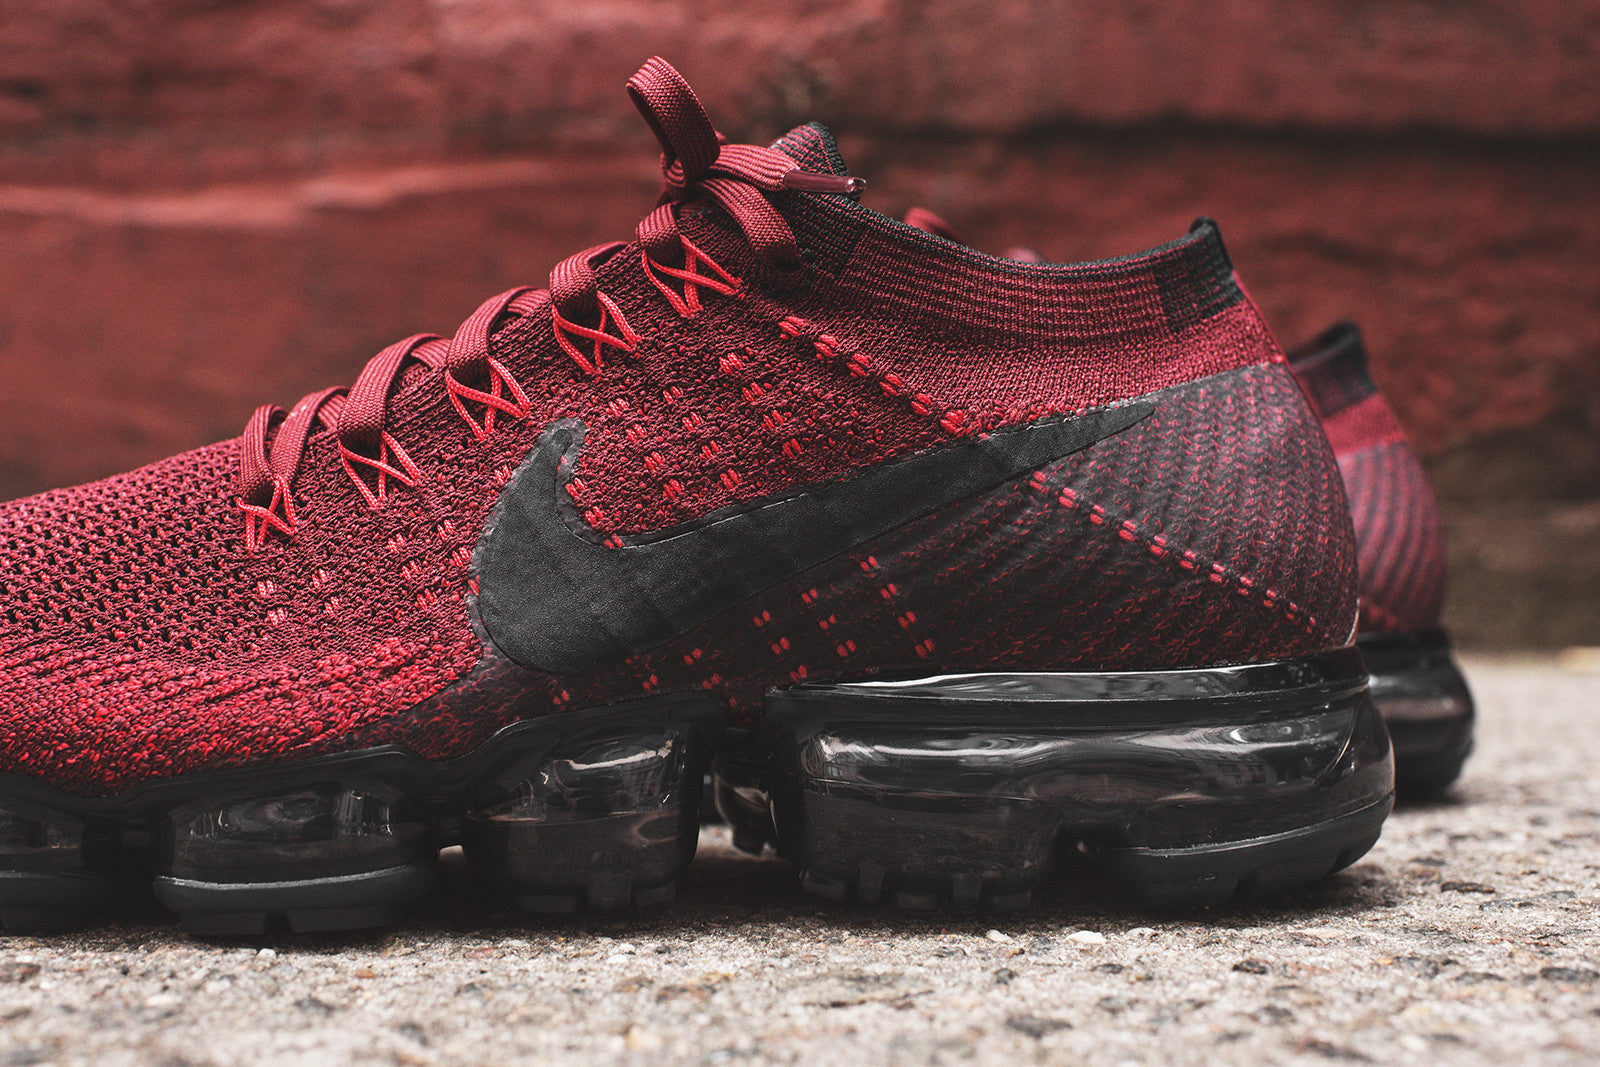 flyknit nike air max 2015 world resources institute